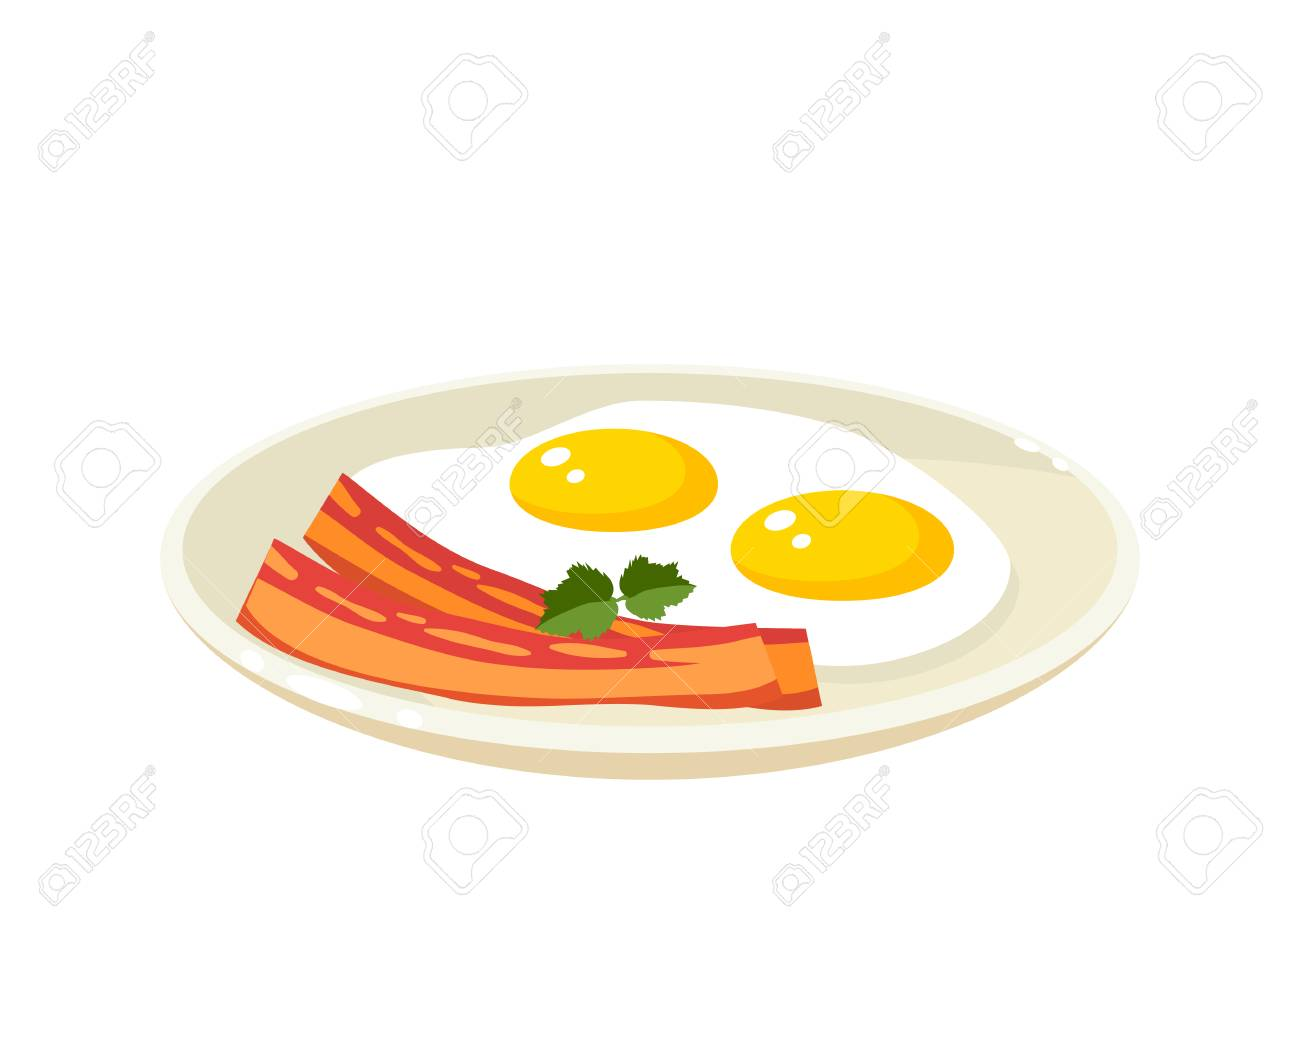 Breakfast Delicious Start To The Day Plate With Fried Eggs Royalty Free Cliparts Vectors And Stock Illustration Image 98677342